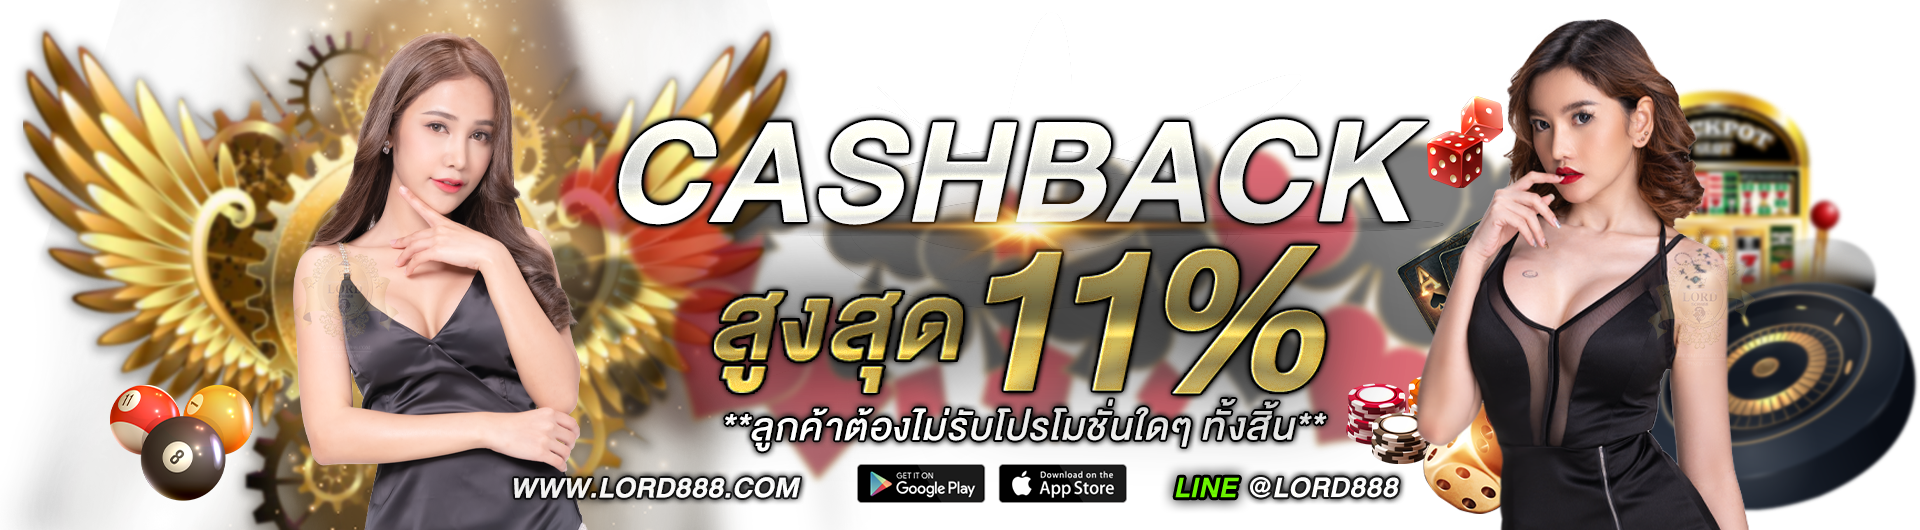 7.5.64_Slide-Lord-CASHBACK